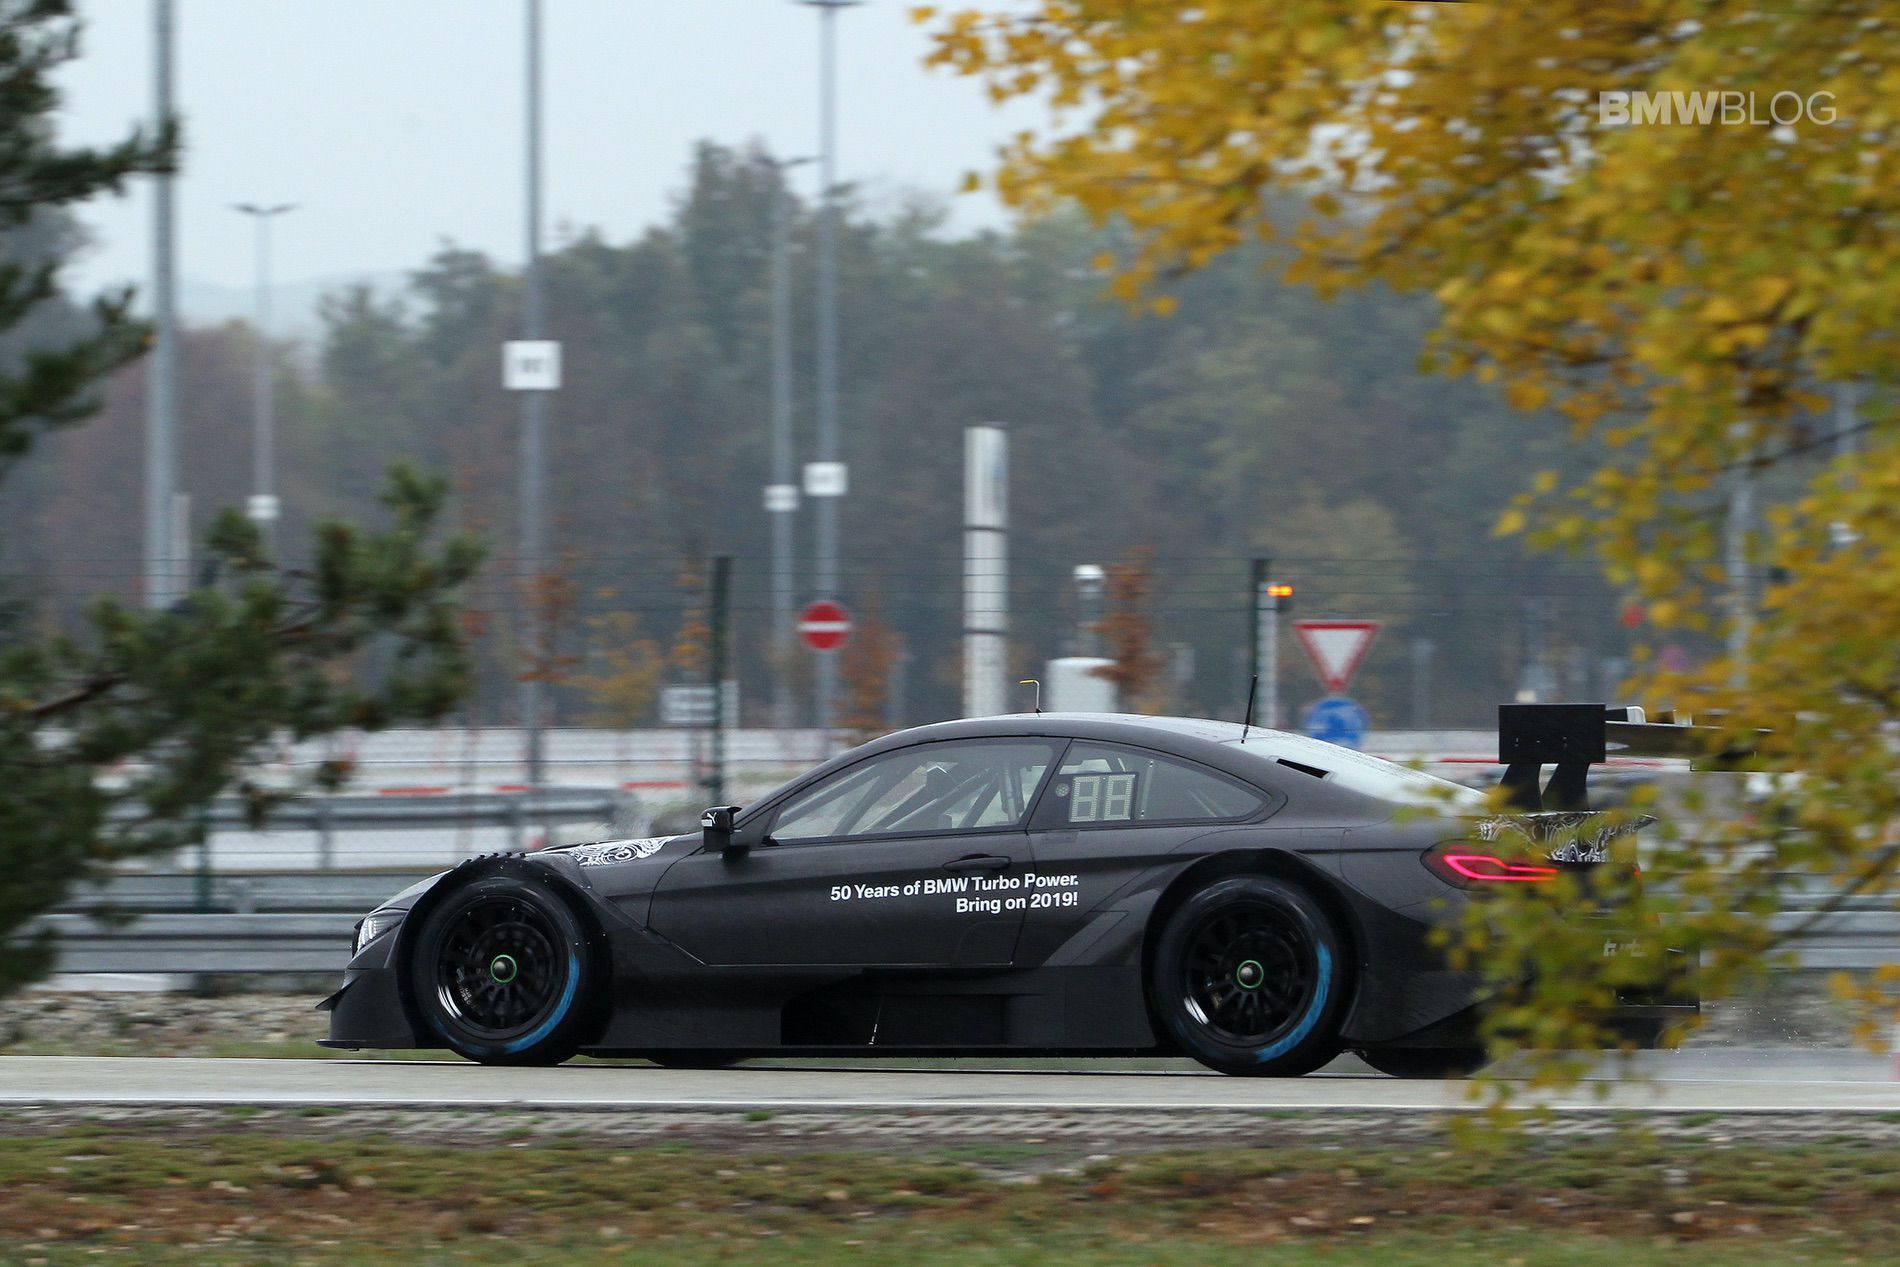 2019 BMW M4 DTM two liter 03